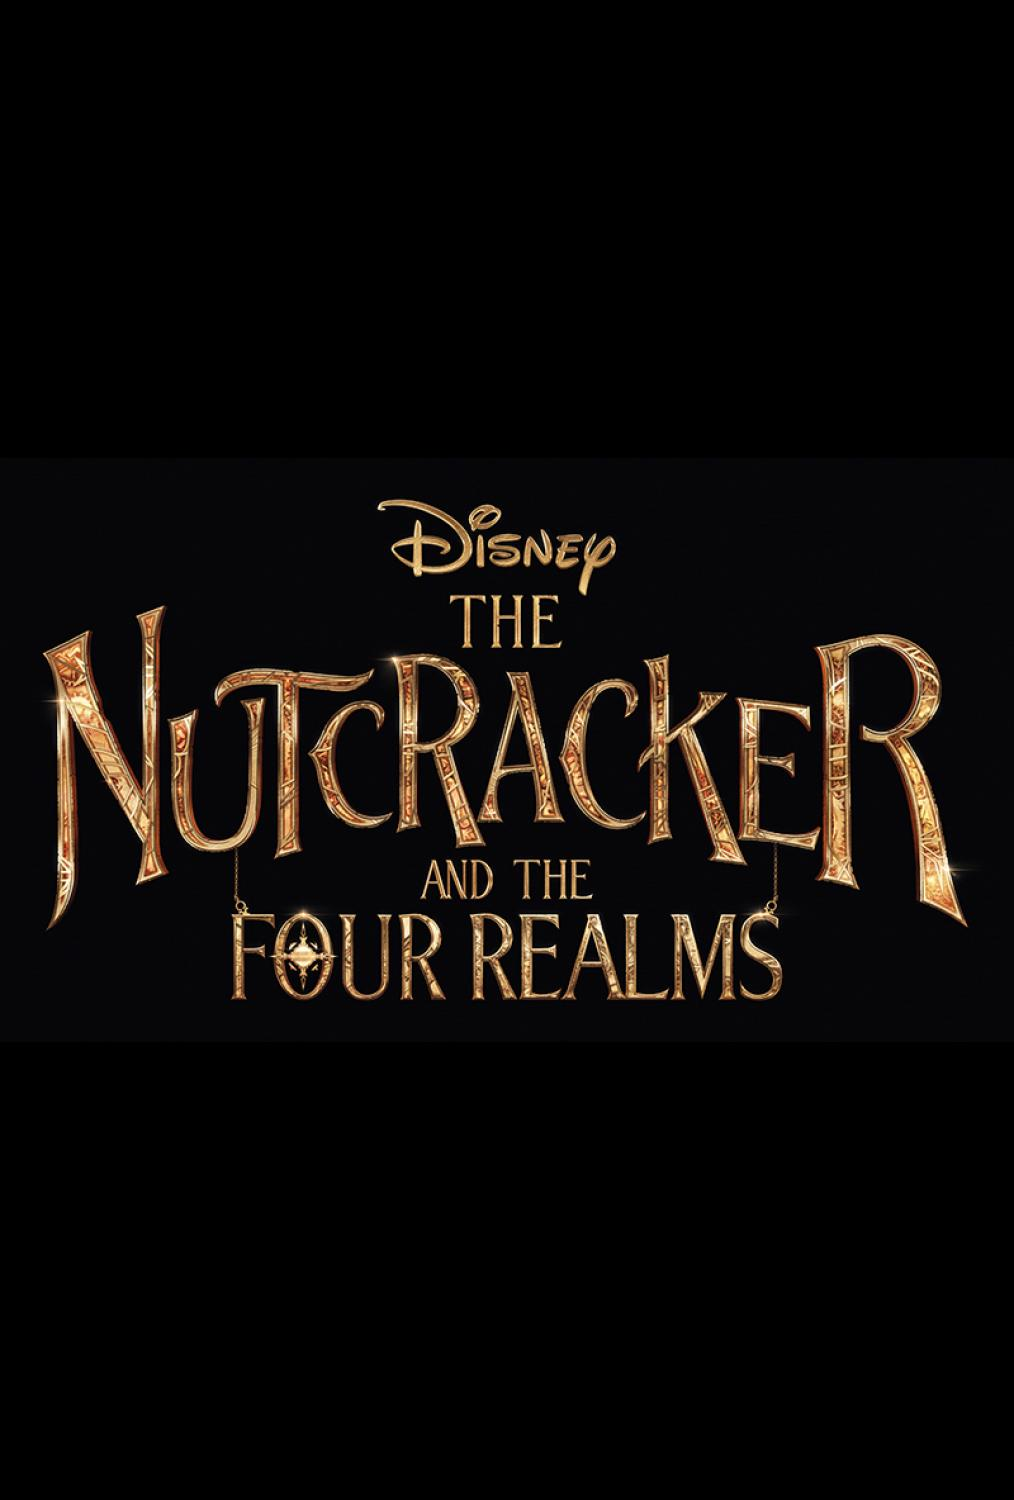 """The Nutcracker and the Four Realms"" releases in U.S. theatres on November 2, 2018."